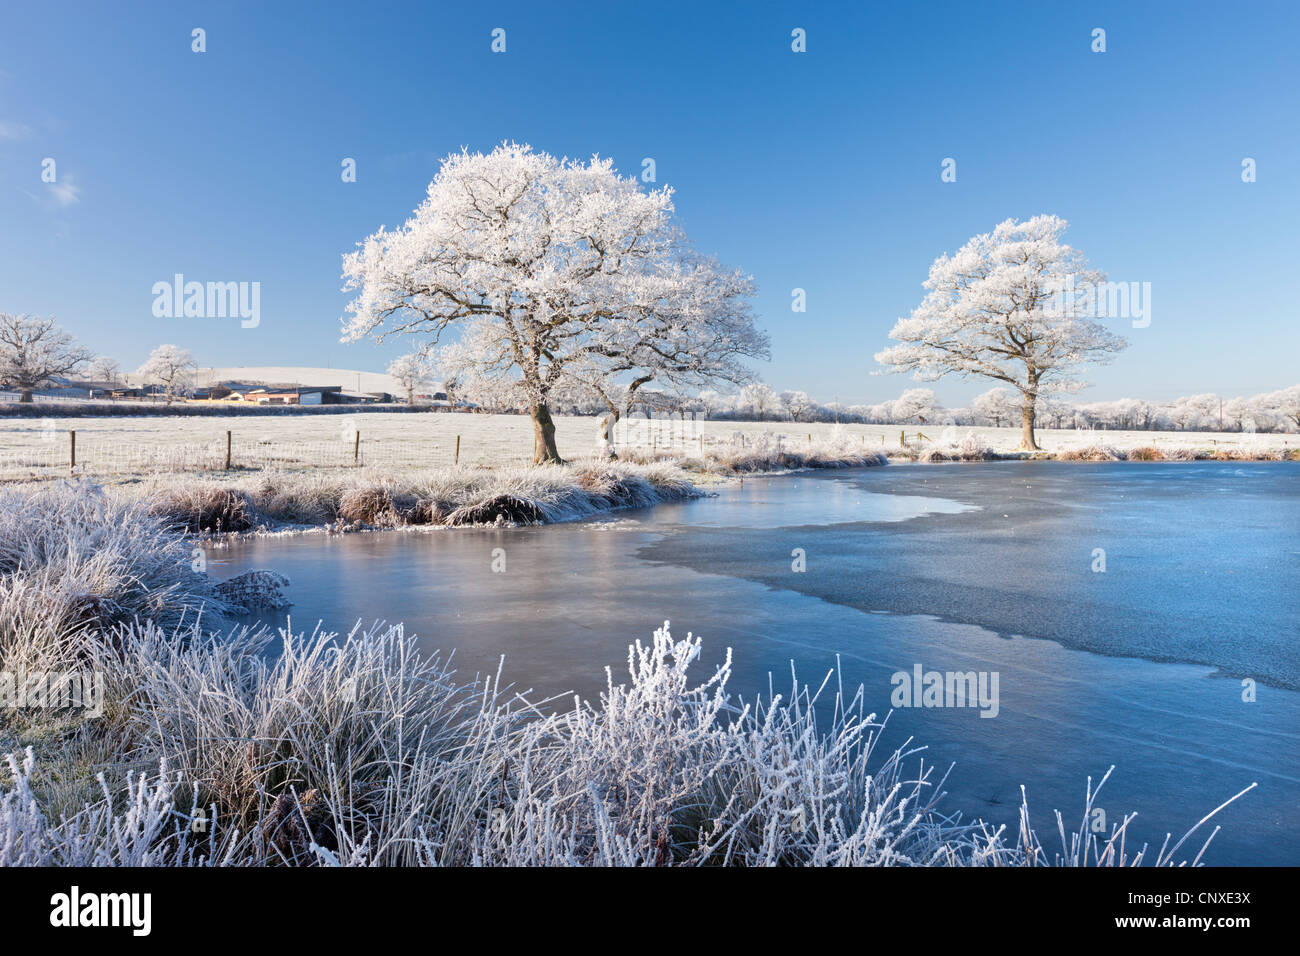 White hoar frosted trees and frozen lake on a cold winter morning, Morchard Road, Devon, England. Winter (December) - Stock Image